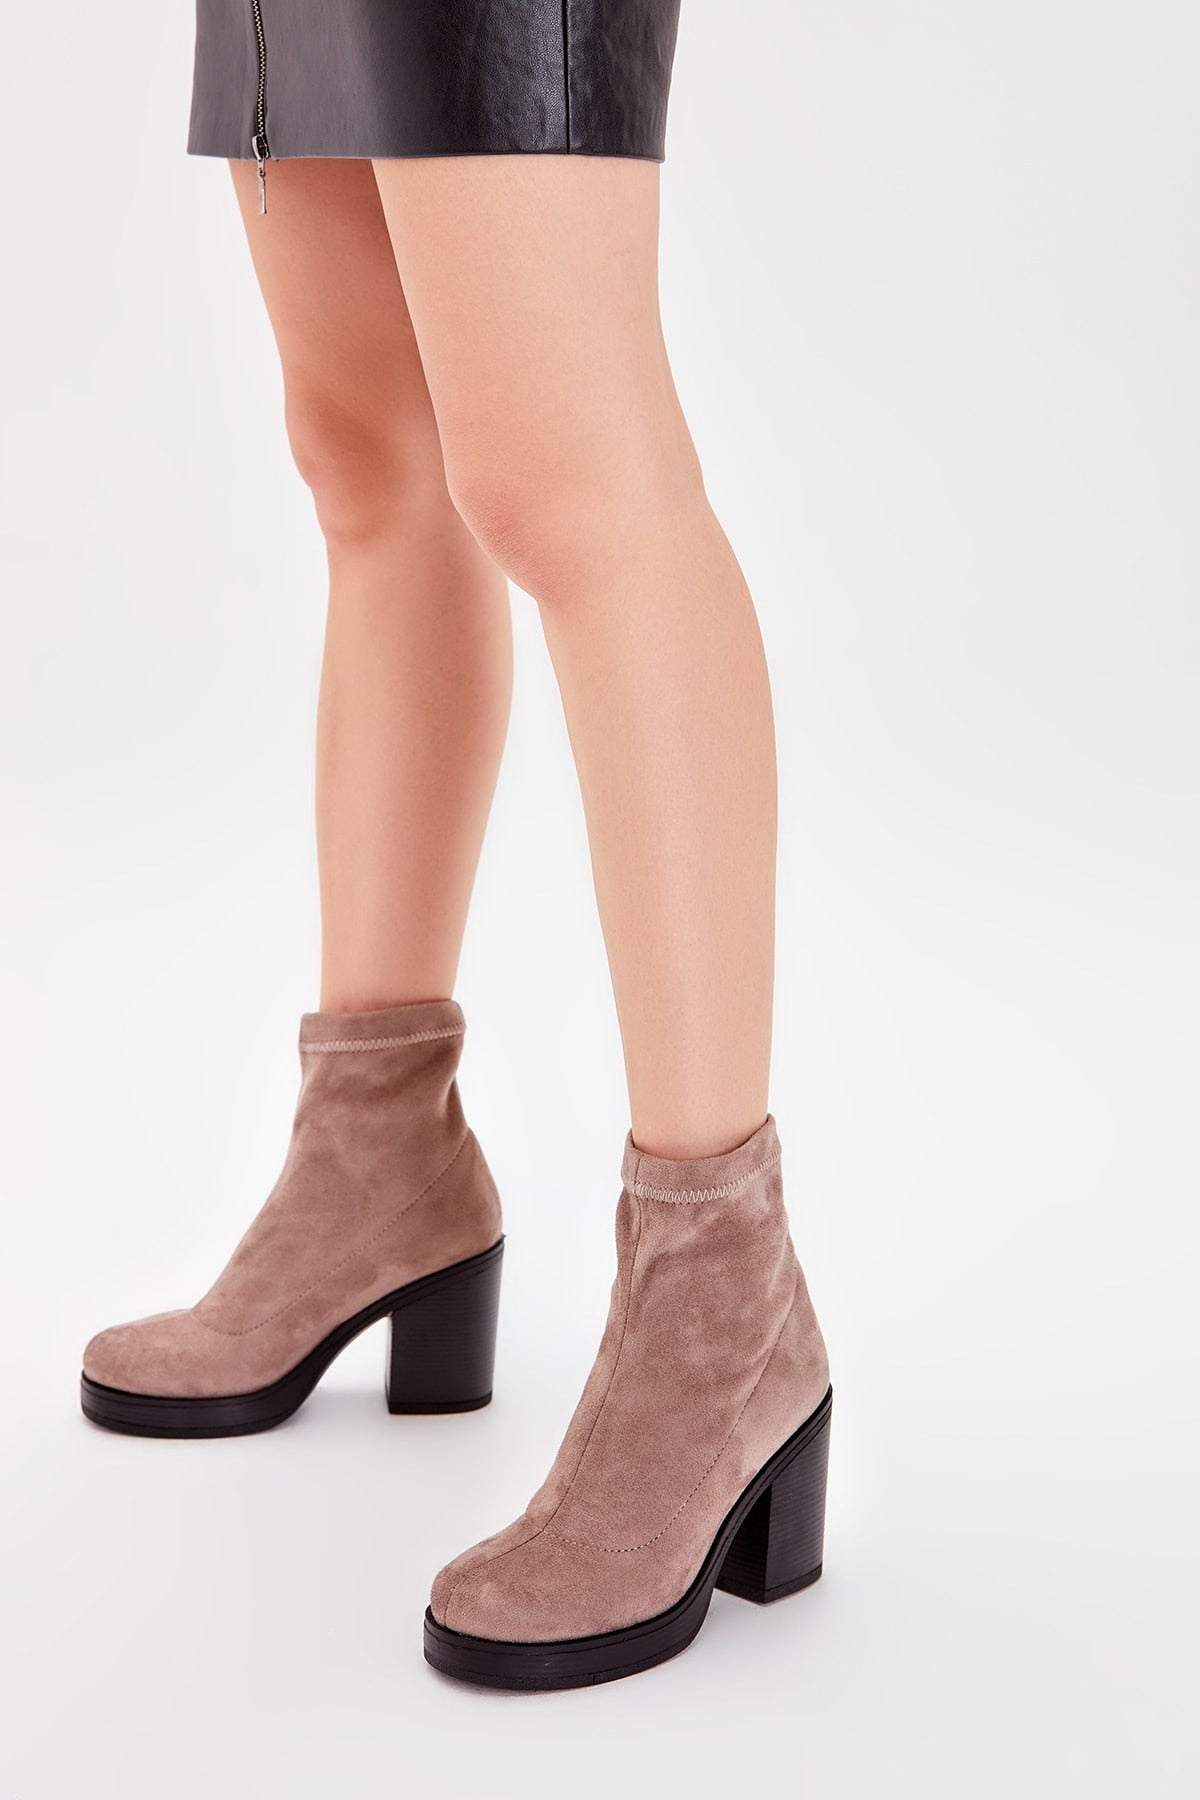 Mink Suede Stretch Women 'S Boots TAKAW20BO0110